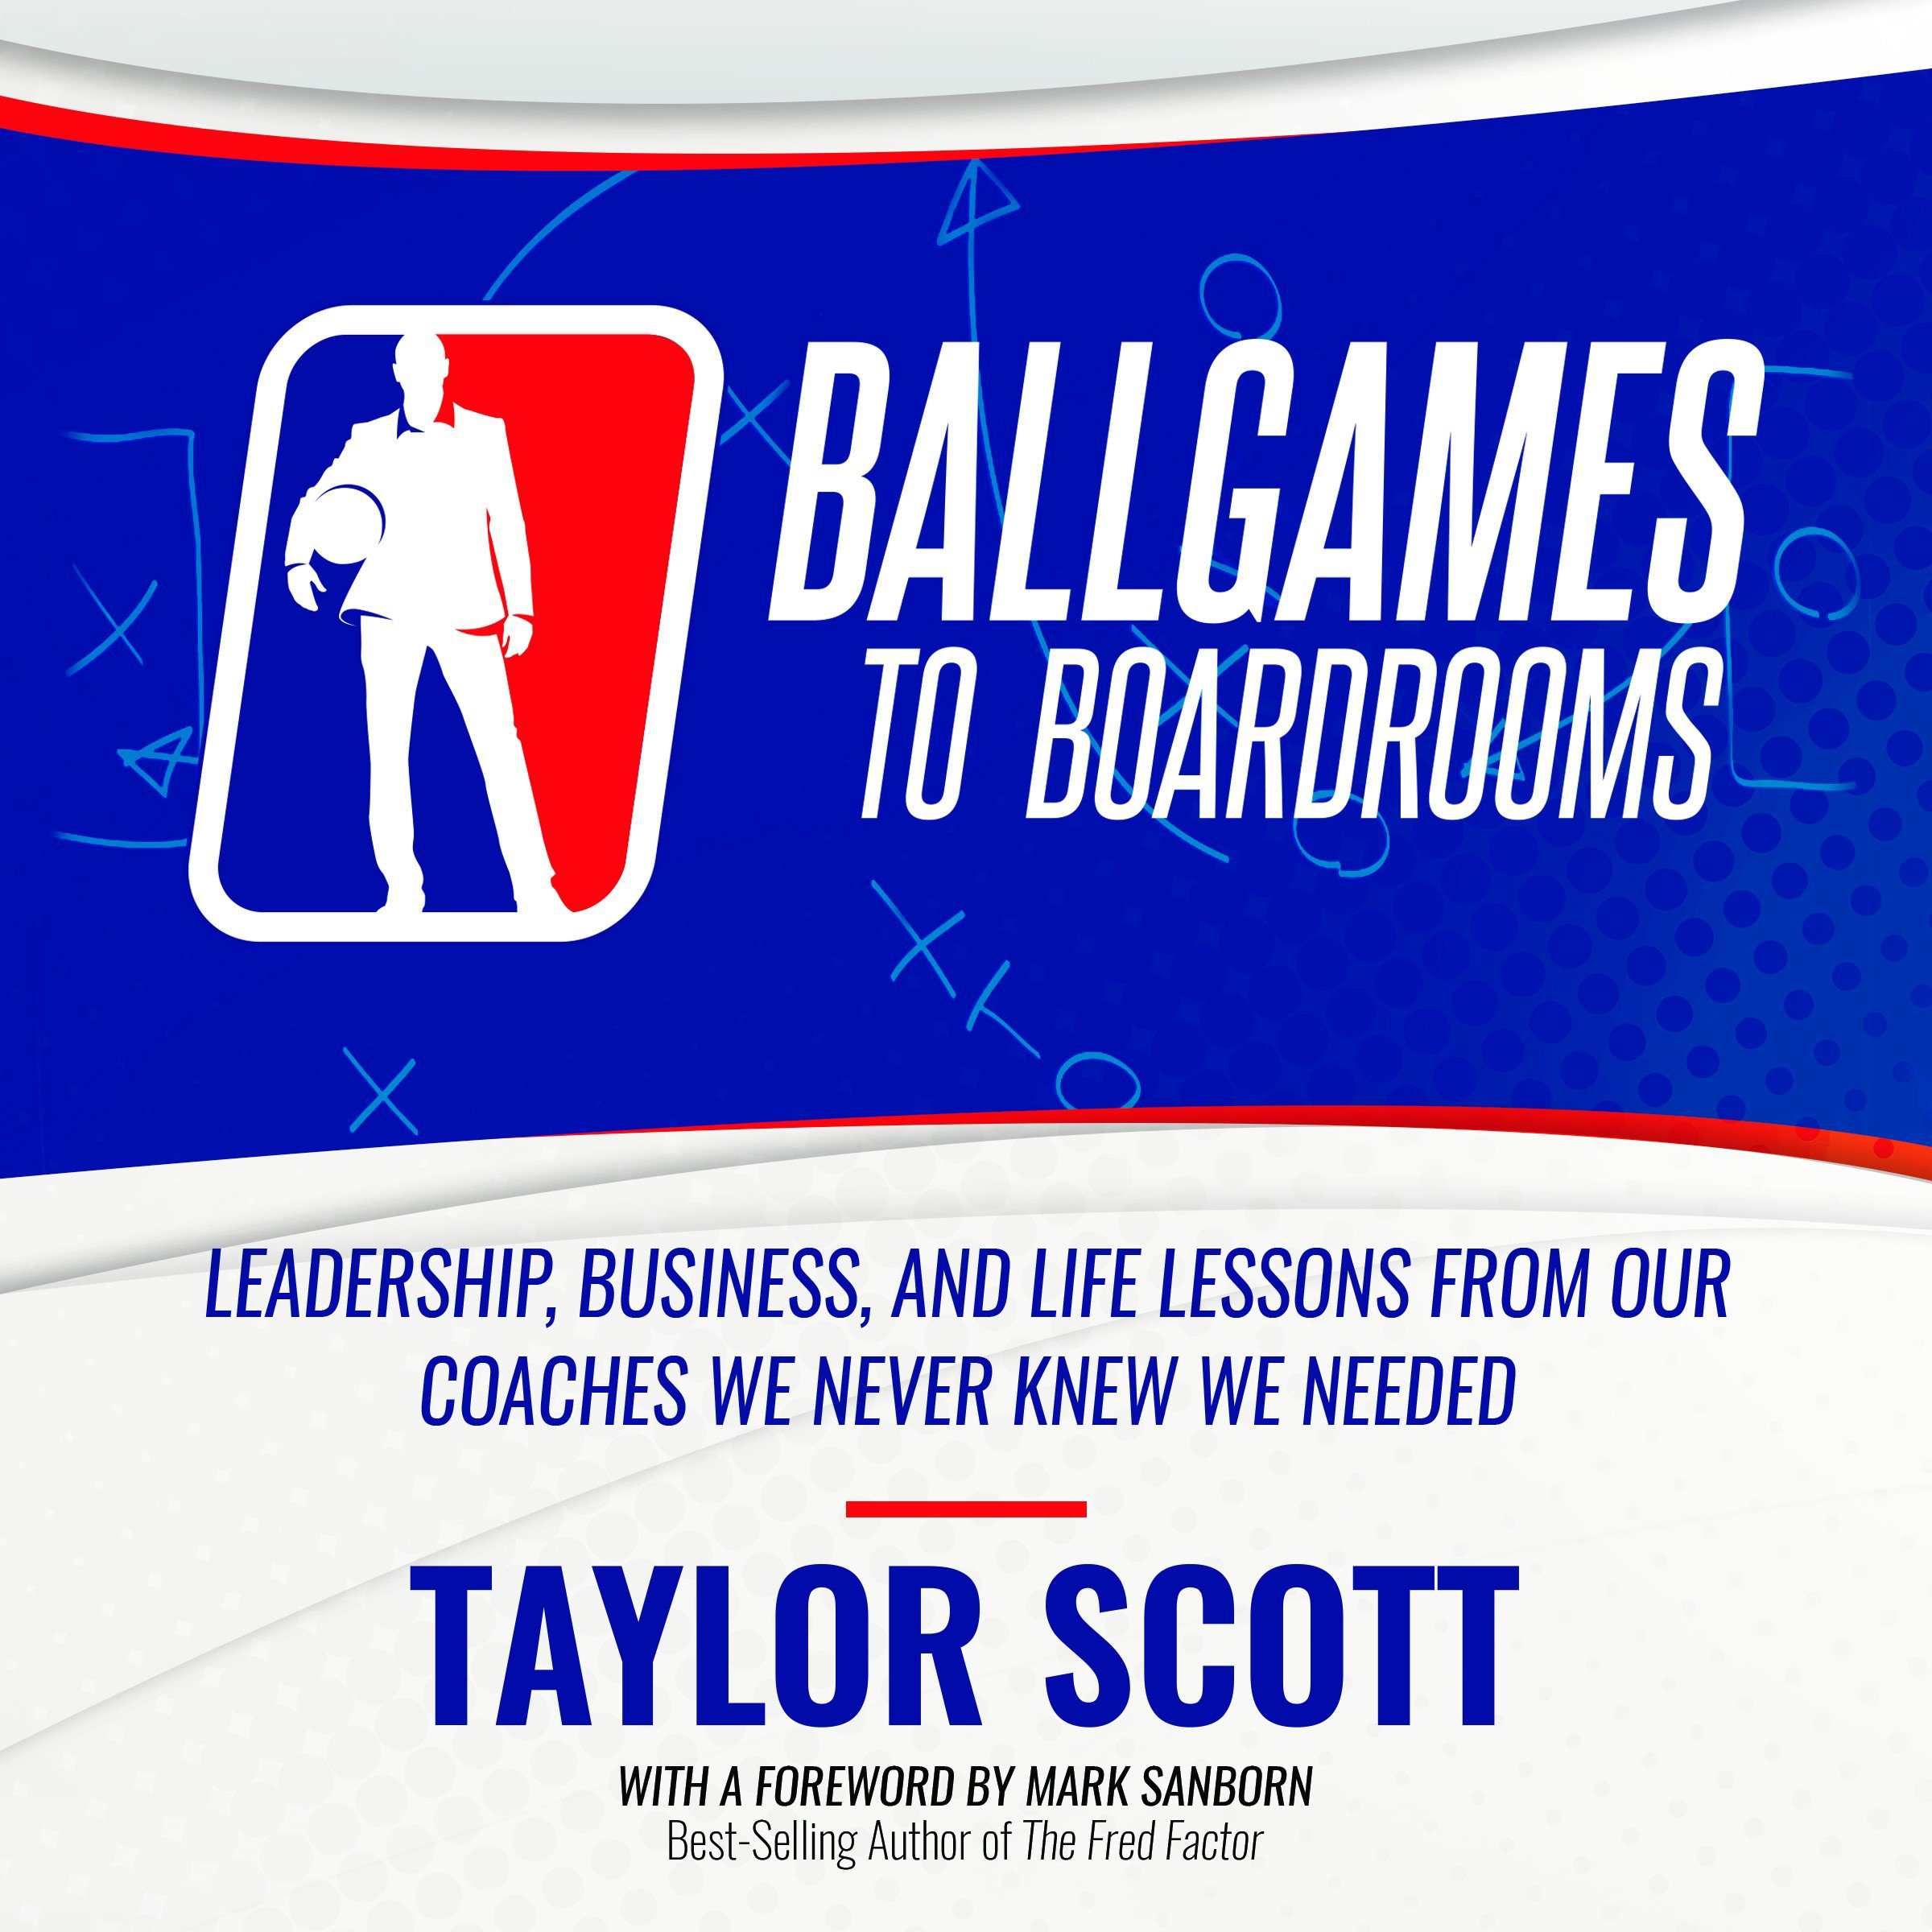 Ballgames to Boardrooms: Leadership, Business, and Life Lessons from Our Coaches We Never Knew We Needed